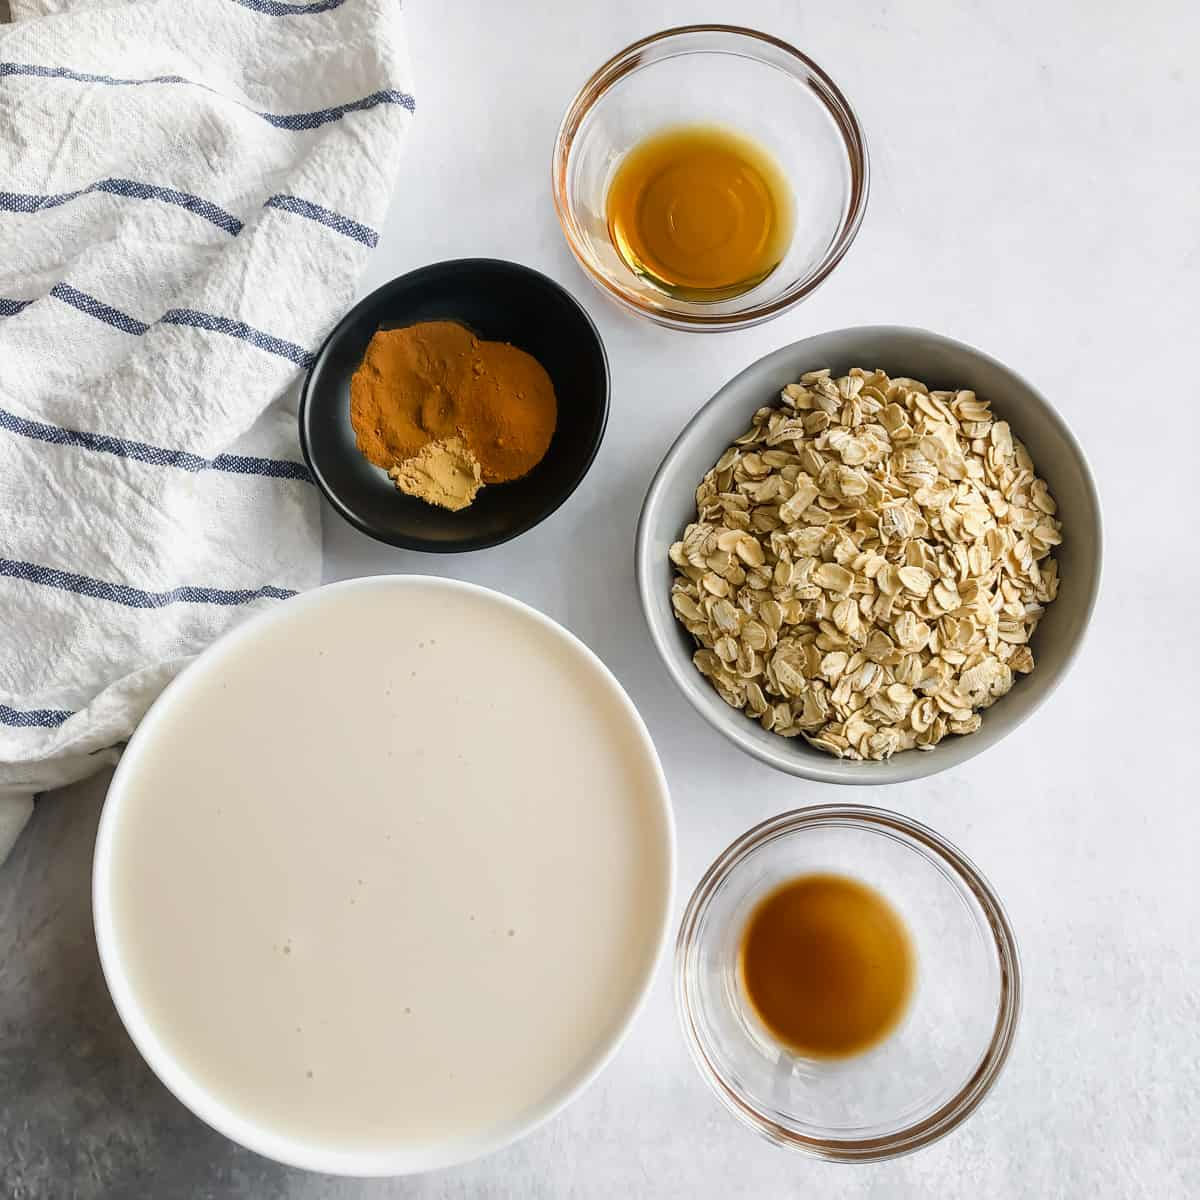 Bowls filled with turmeric, cinnamon, ginger, oats, vanilla extract, maple syrup, and almond milk on white surface with blue-and-white napkin